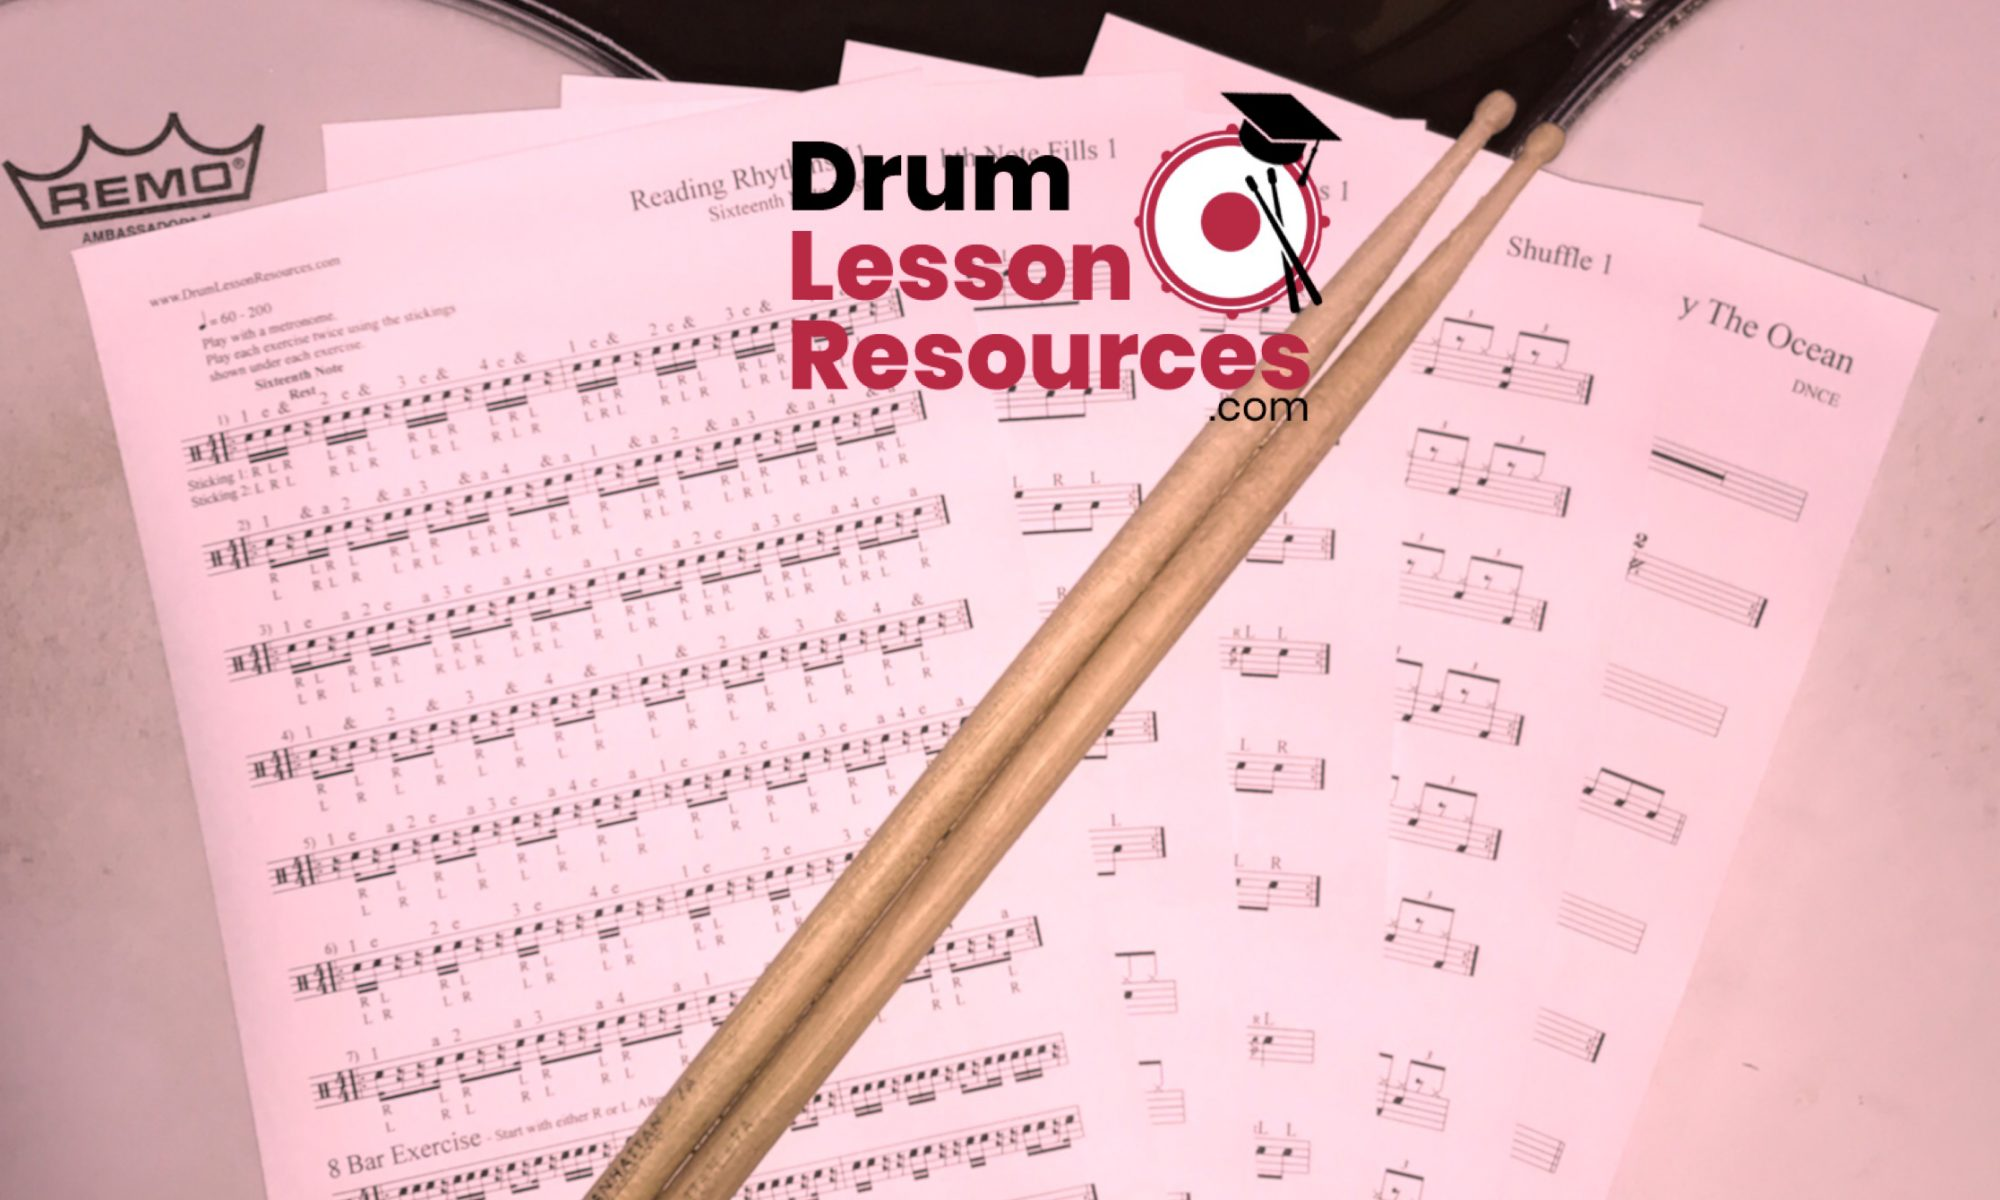 Drum Lesson Resources